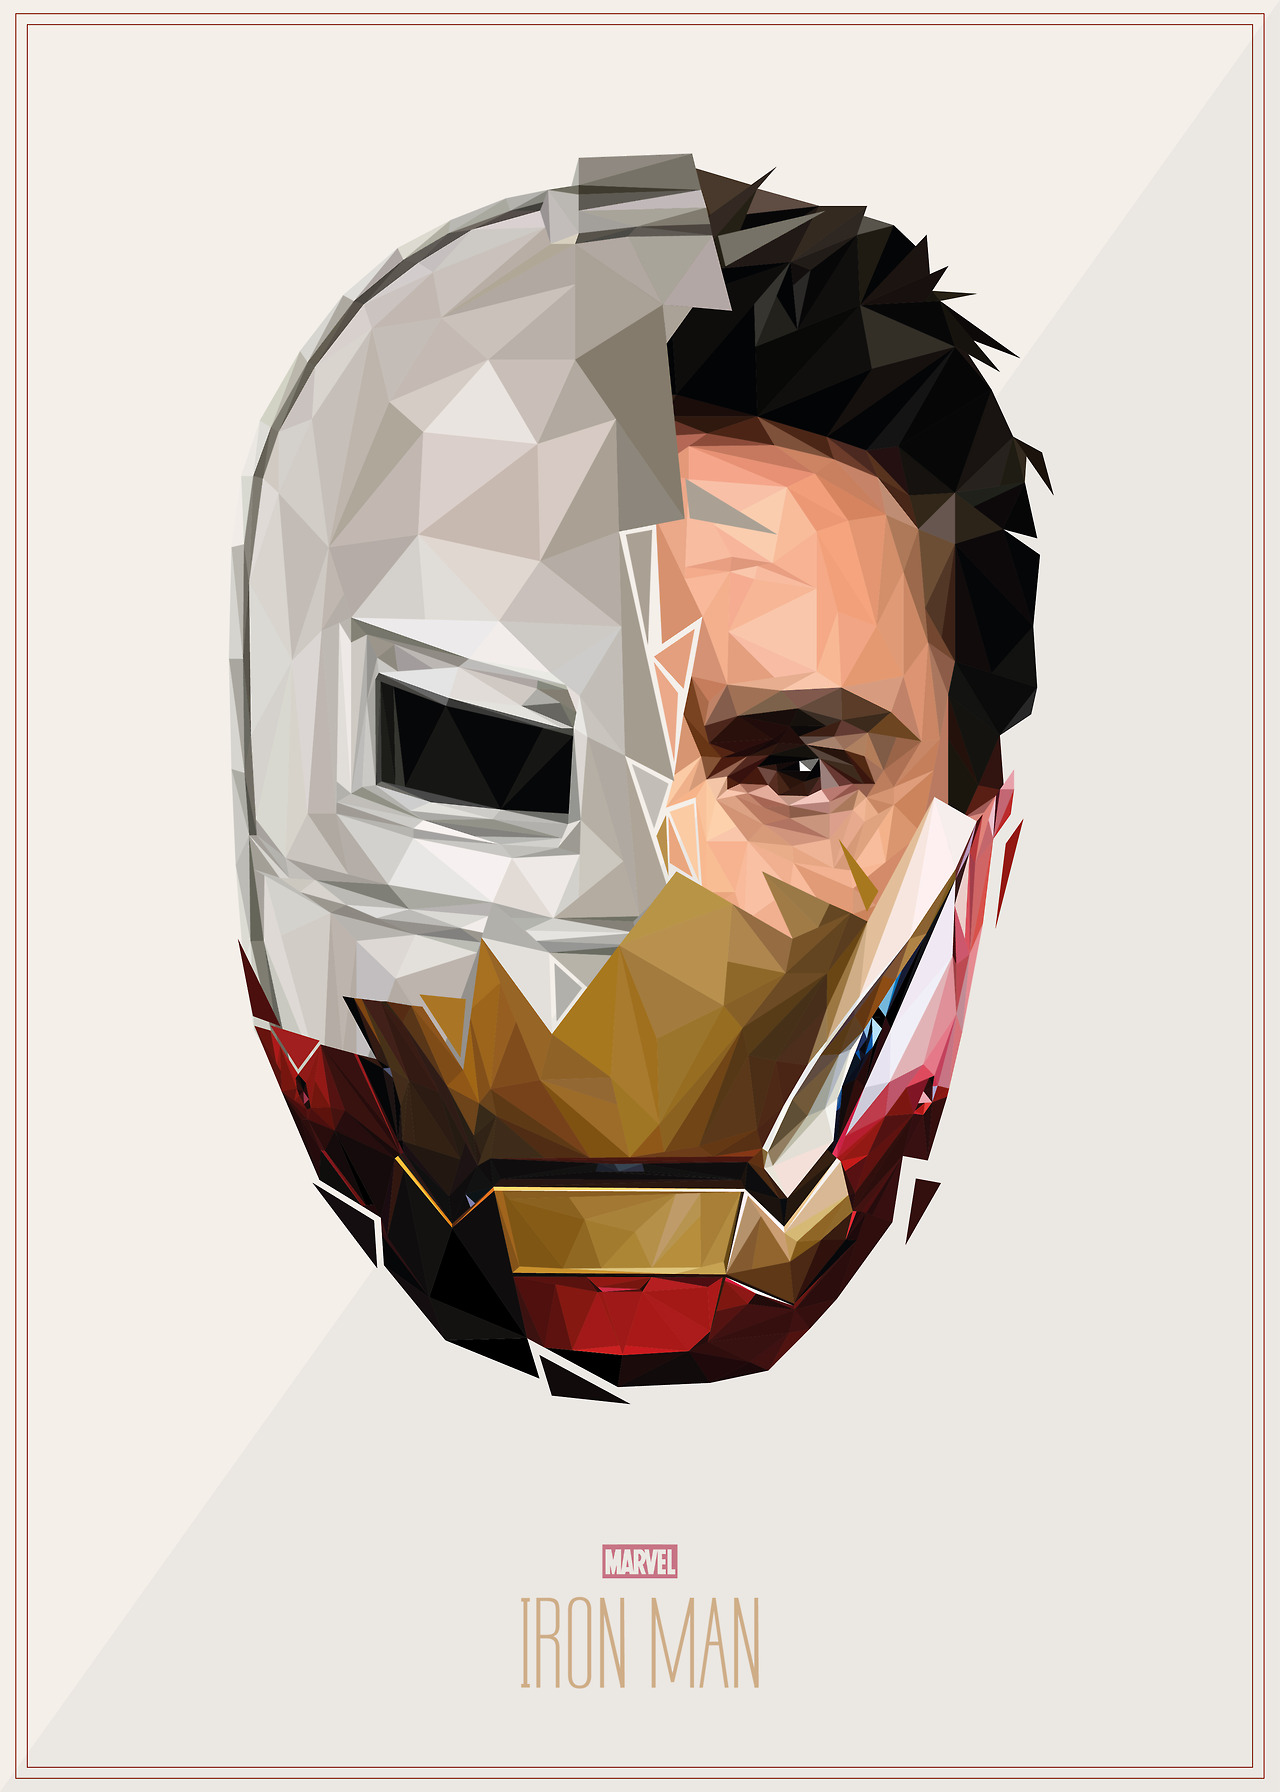 simon-delart-superhero-triangle-illustrations-ironman